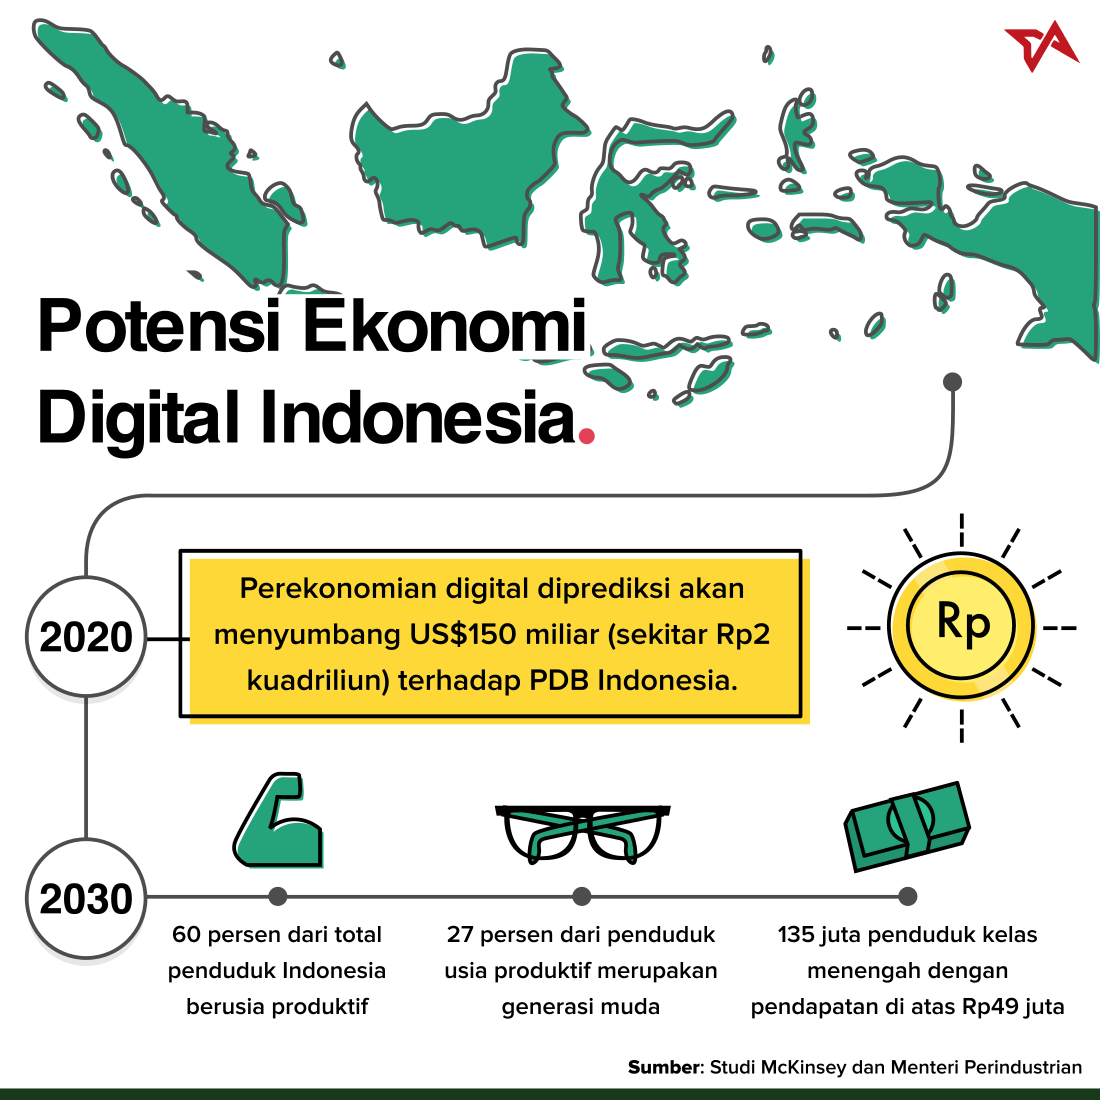 Potensi Ekonomi Digital Indonesia | Ilustrasi